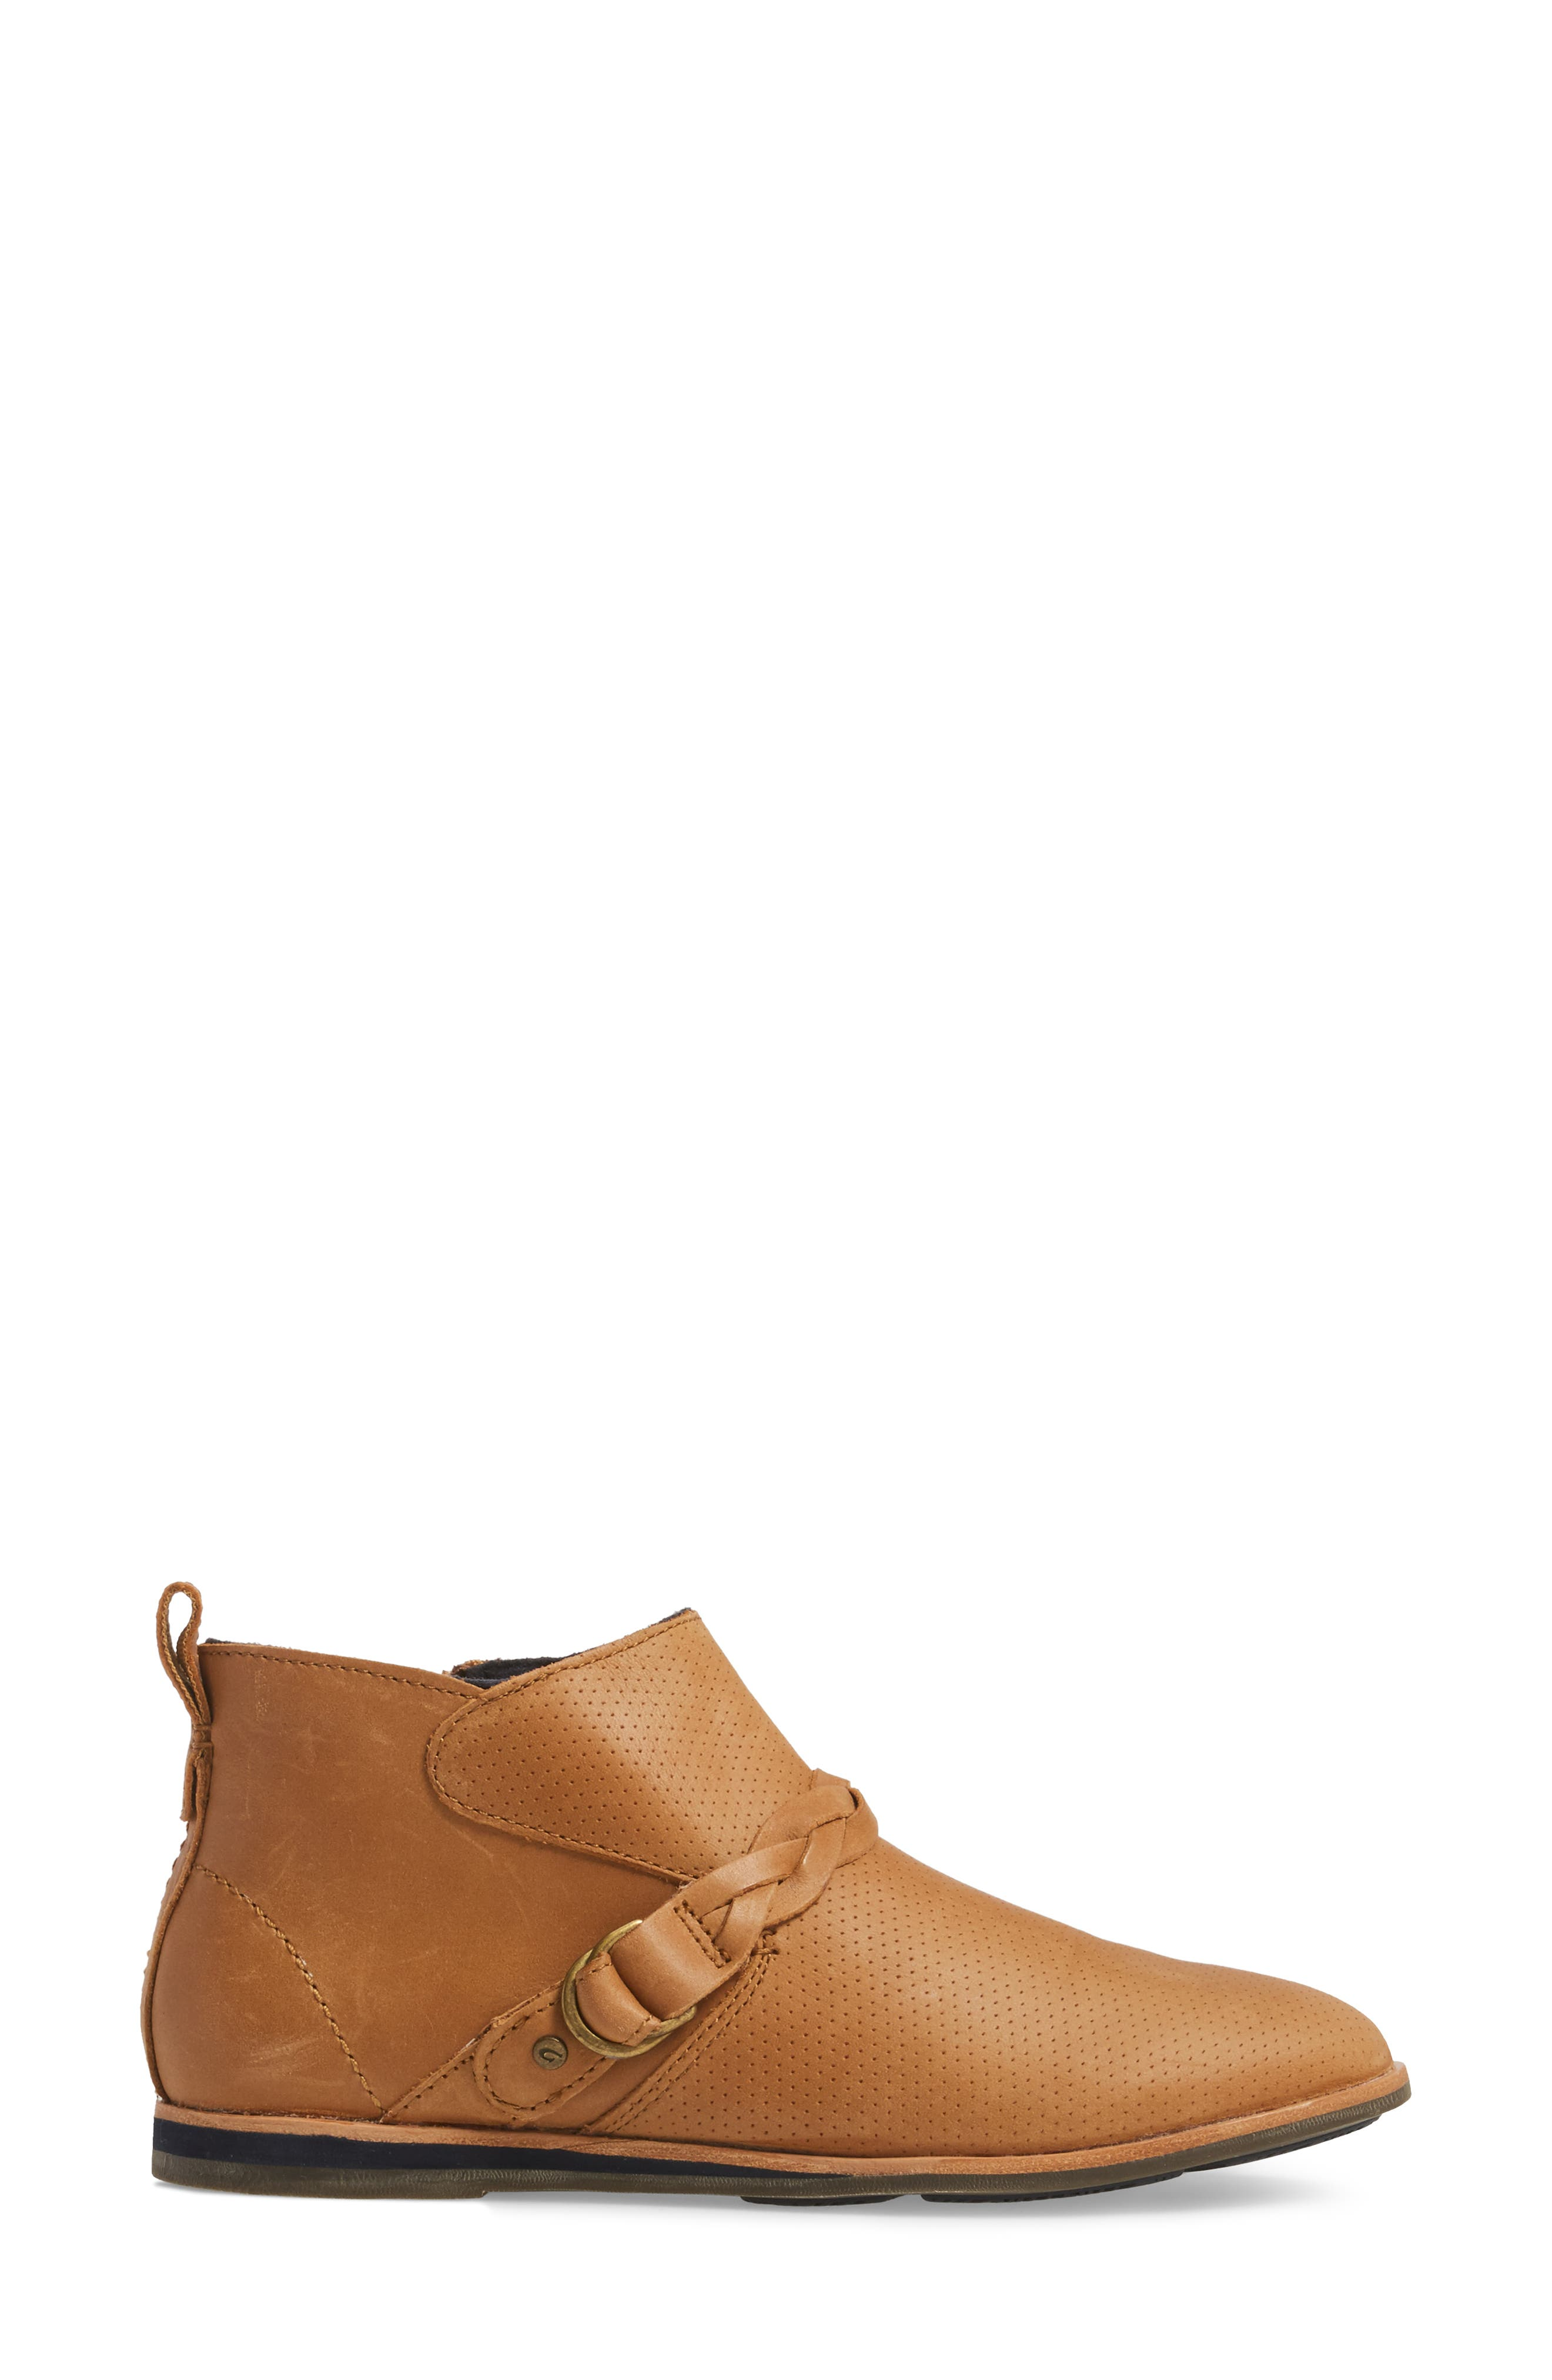 Ho'olu Perforated Bootie,                             Alternate thumbnail 3, color,                             Pecan/ Pecan Leather